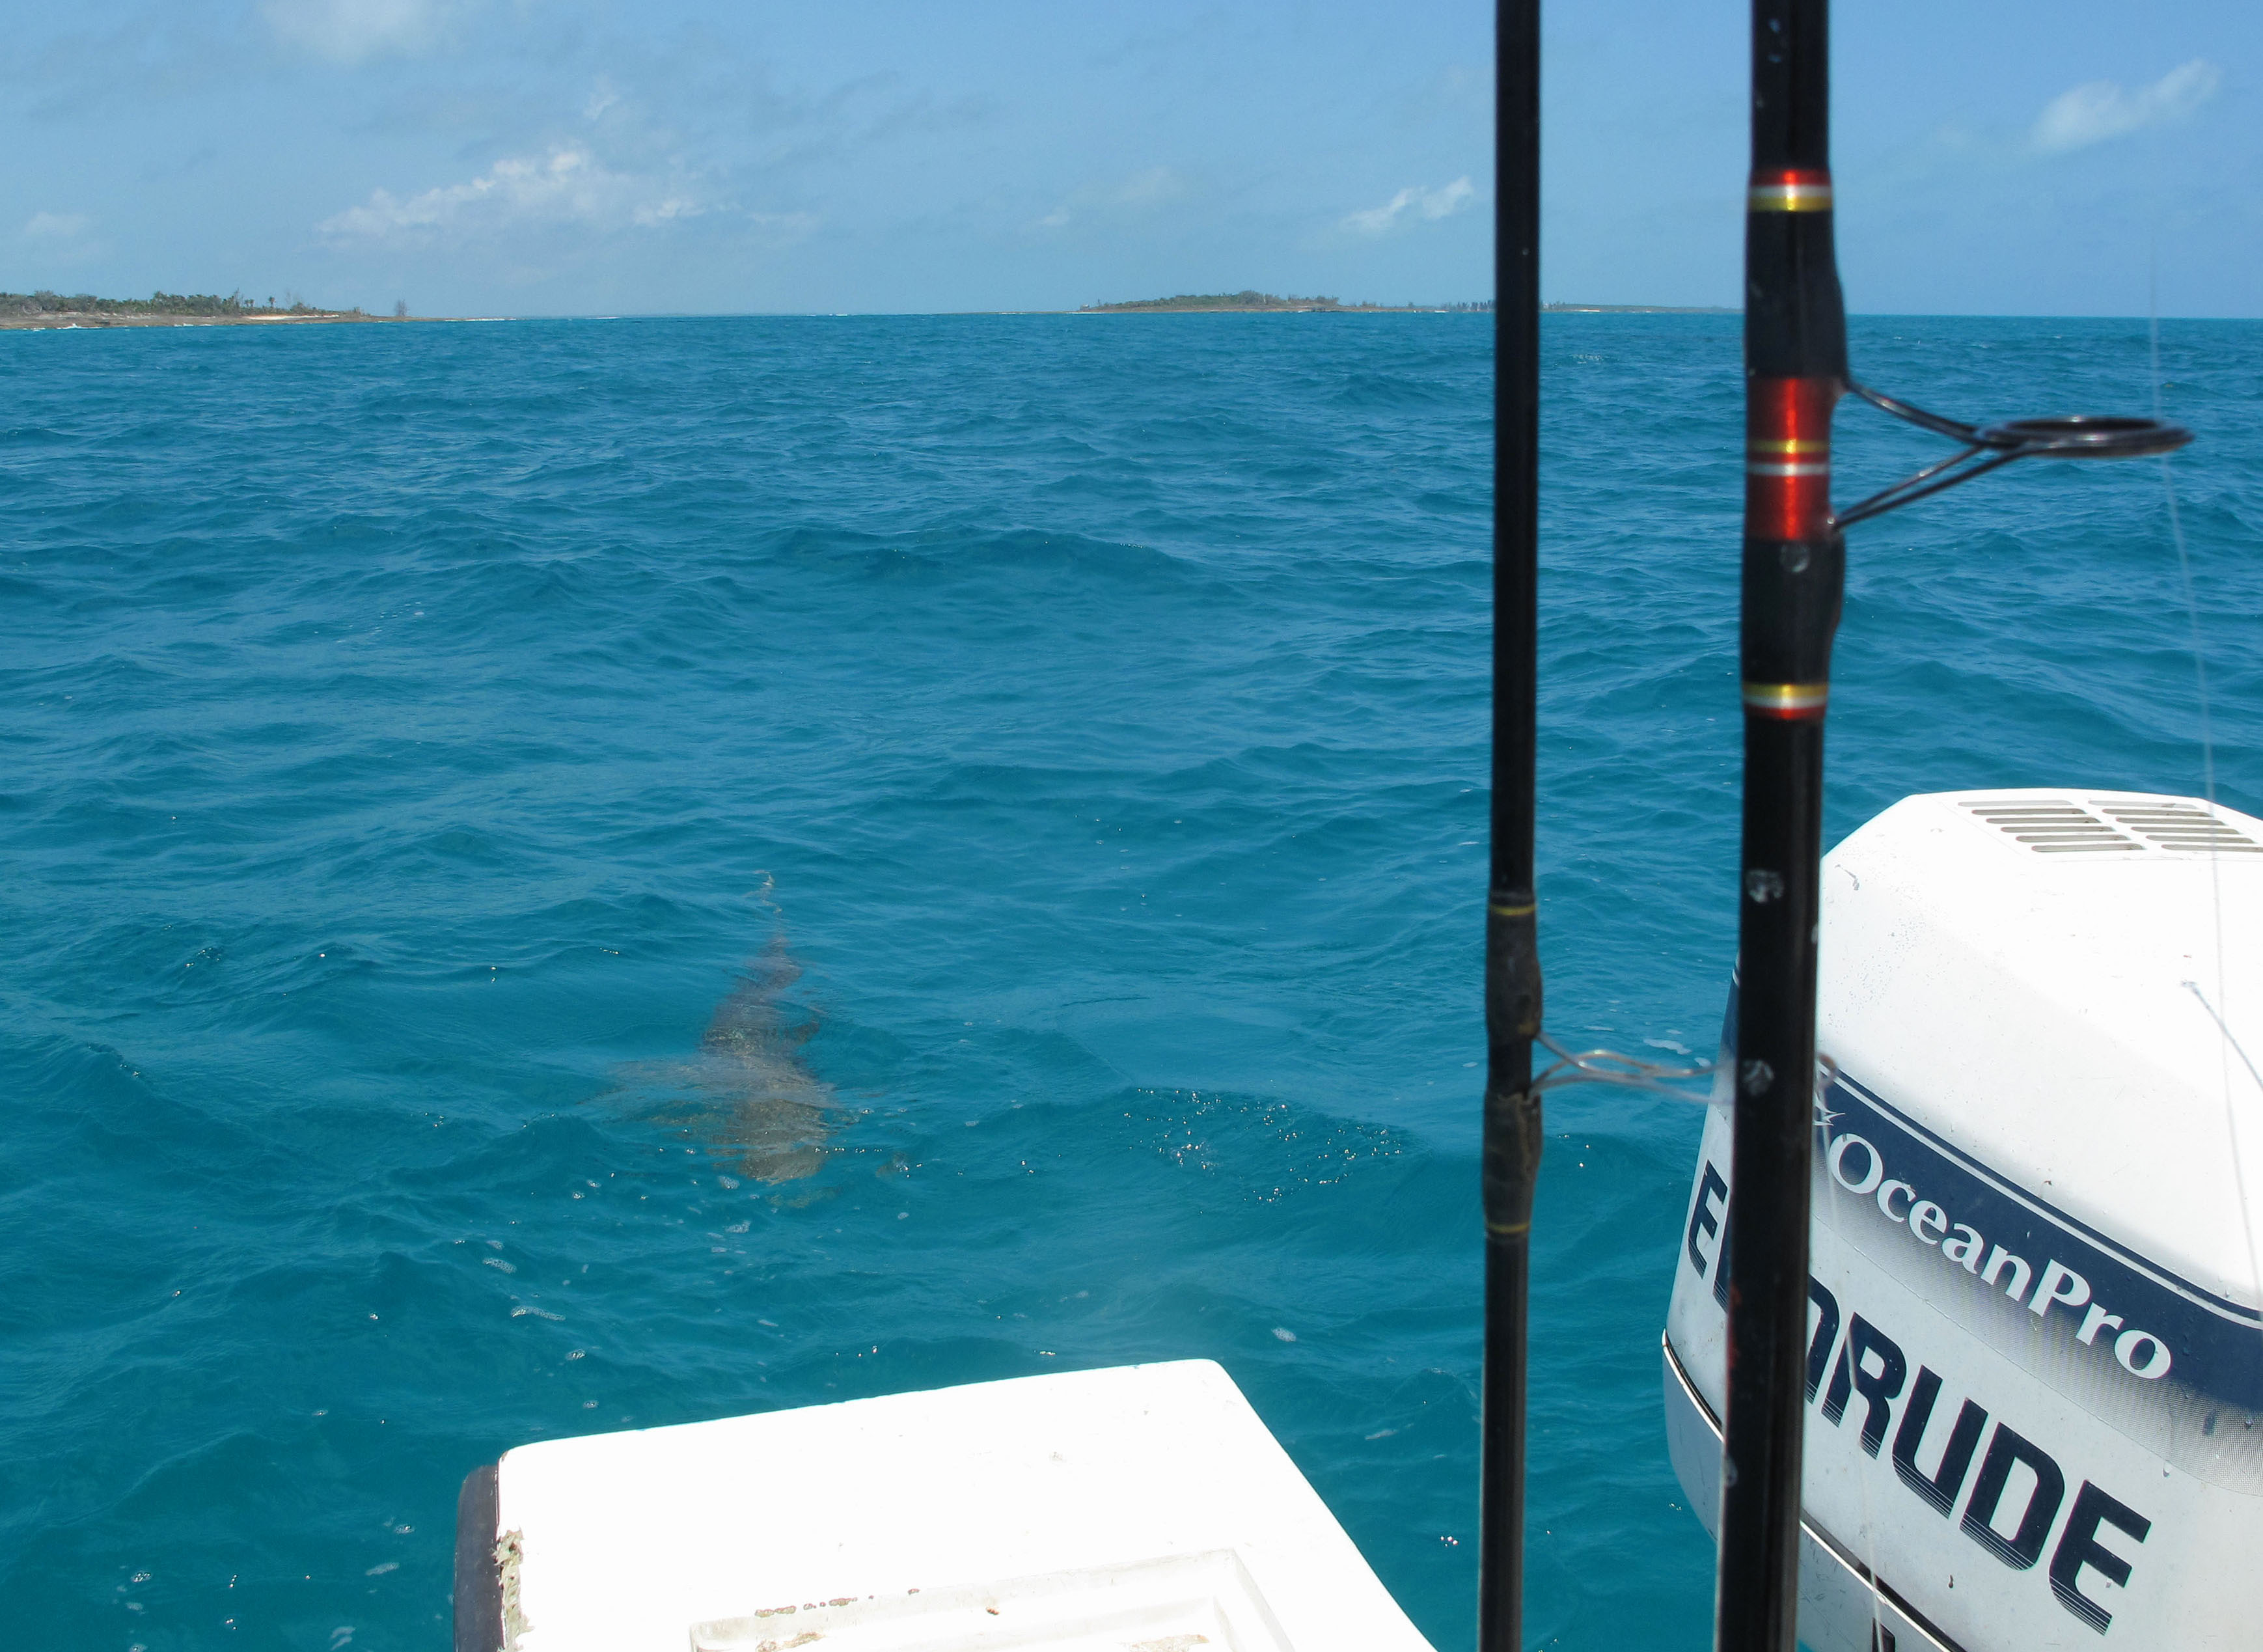 bahamas, abaco, green turtle cay, new plymouth